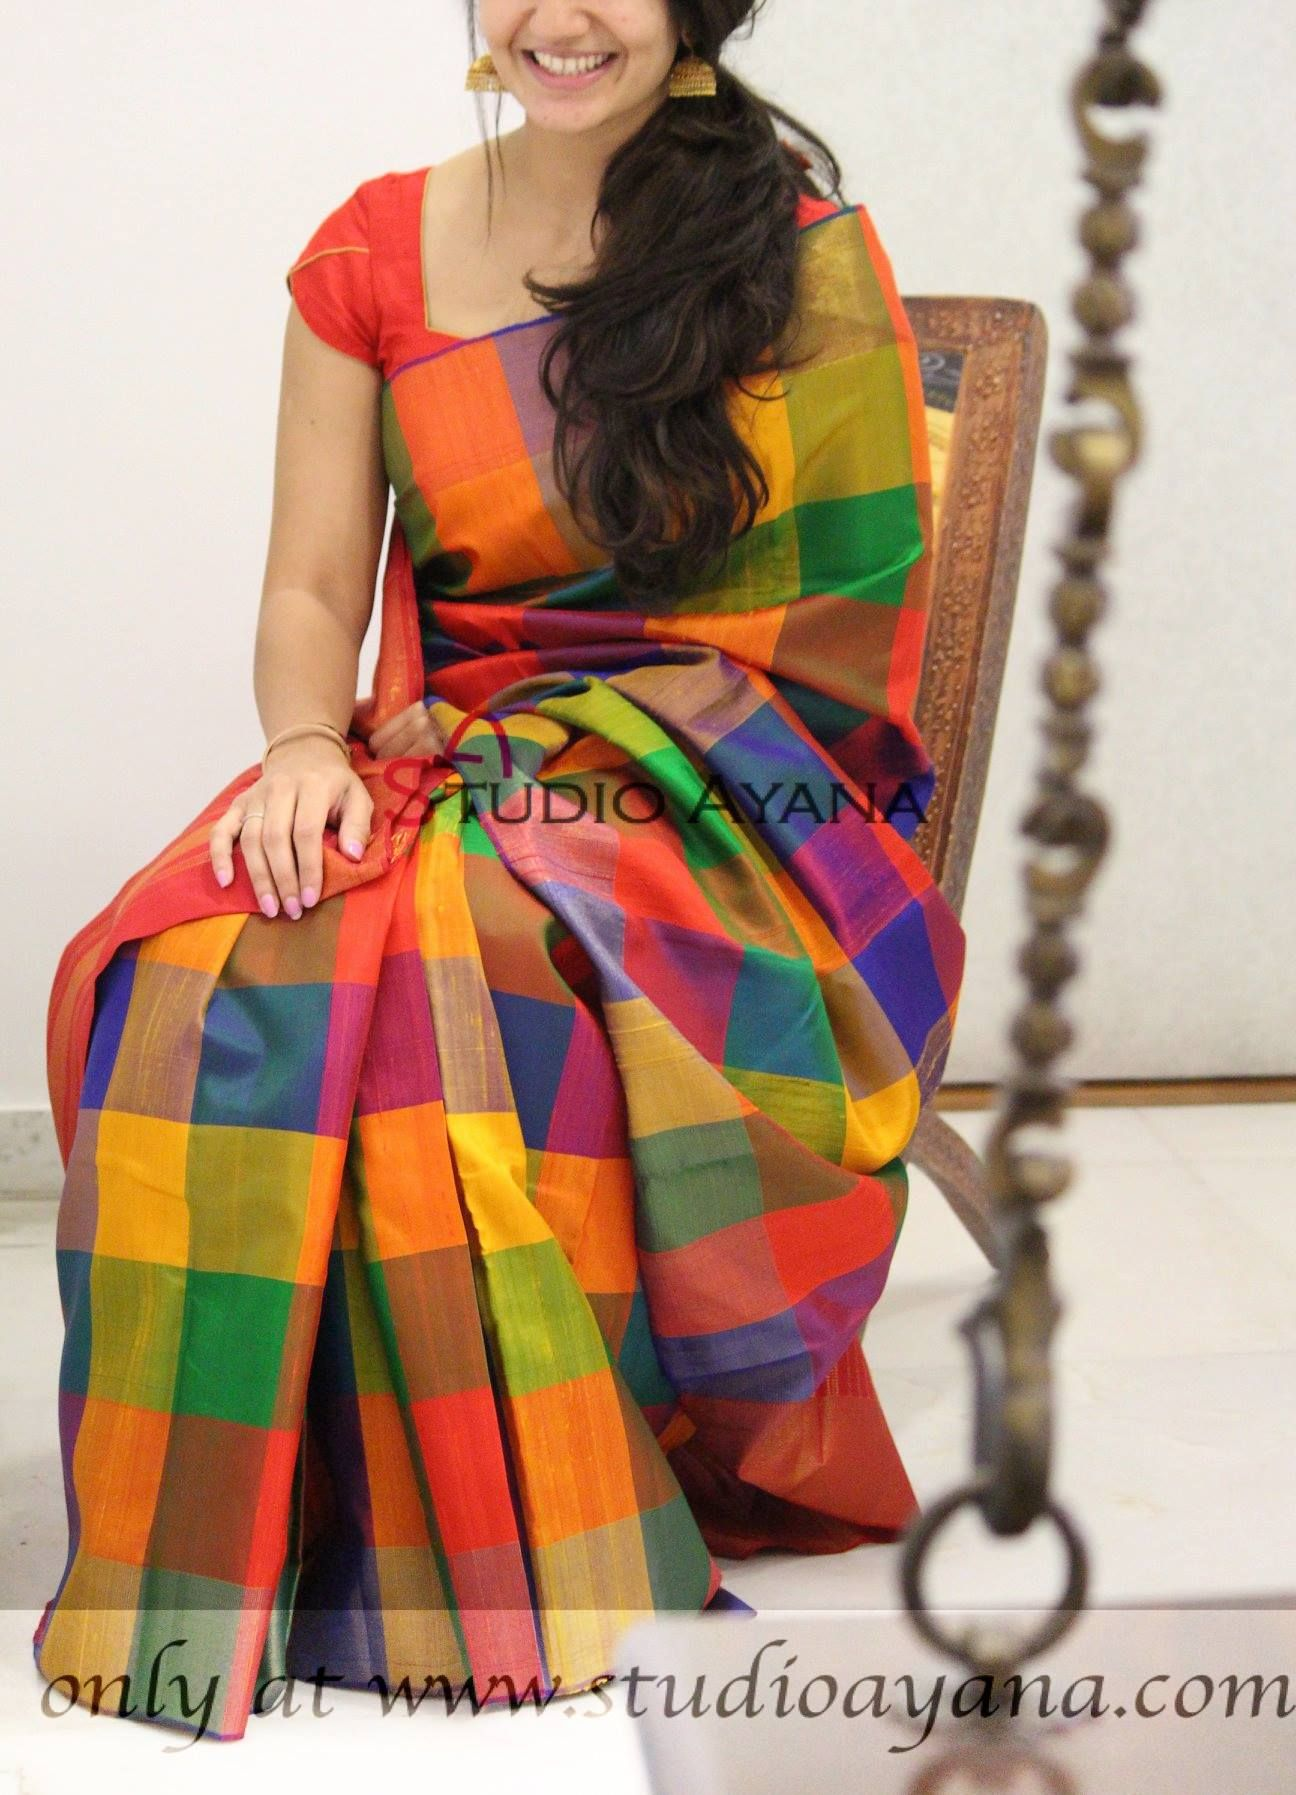 Red Pure Handloom Multicolor Kanchi Organza saree and blouse for women,wedding saree,indian saree,saree dress,saree for women,sari,saris